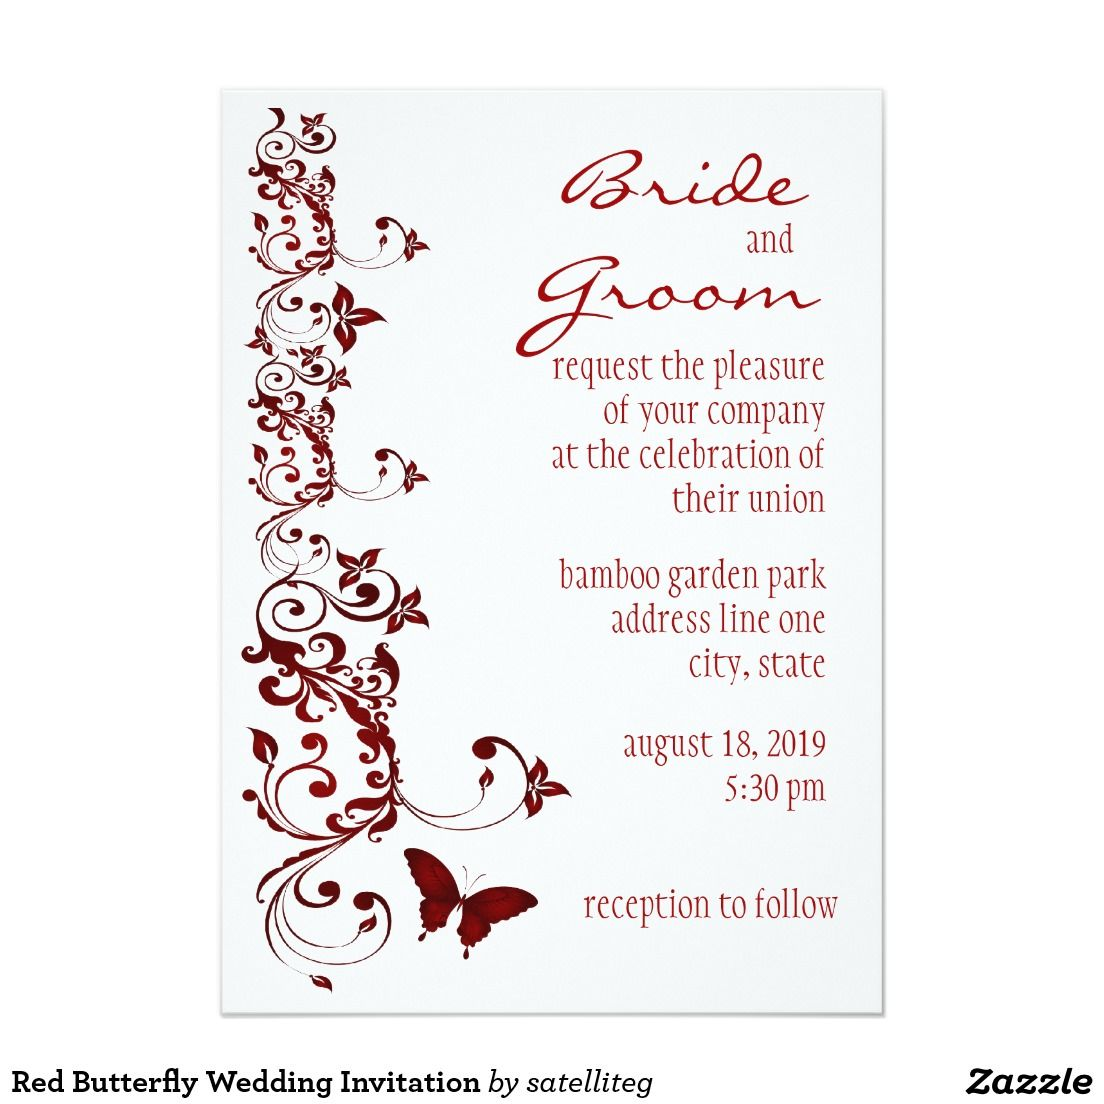 Red Butterfly Wedding Invitation Red Butterfly Butterfly And Shopping